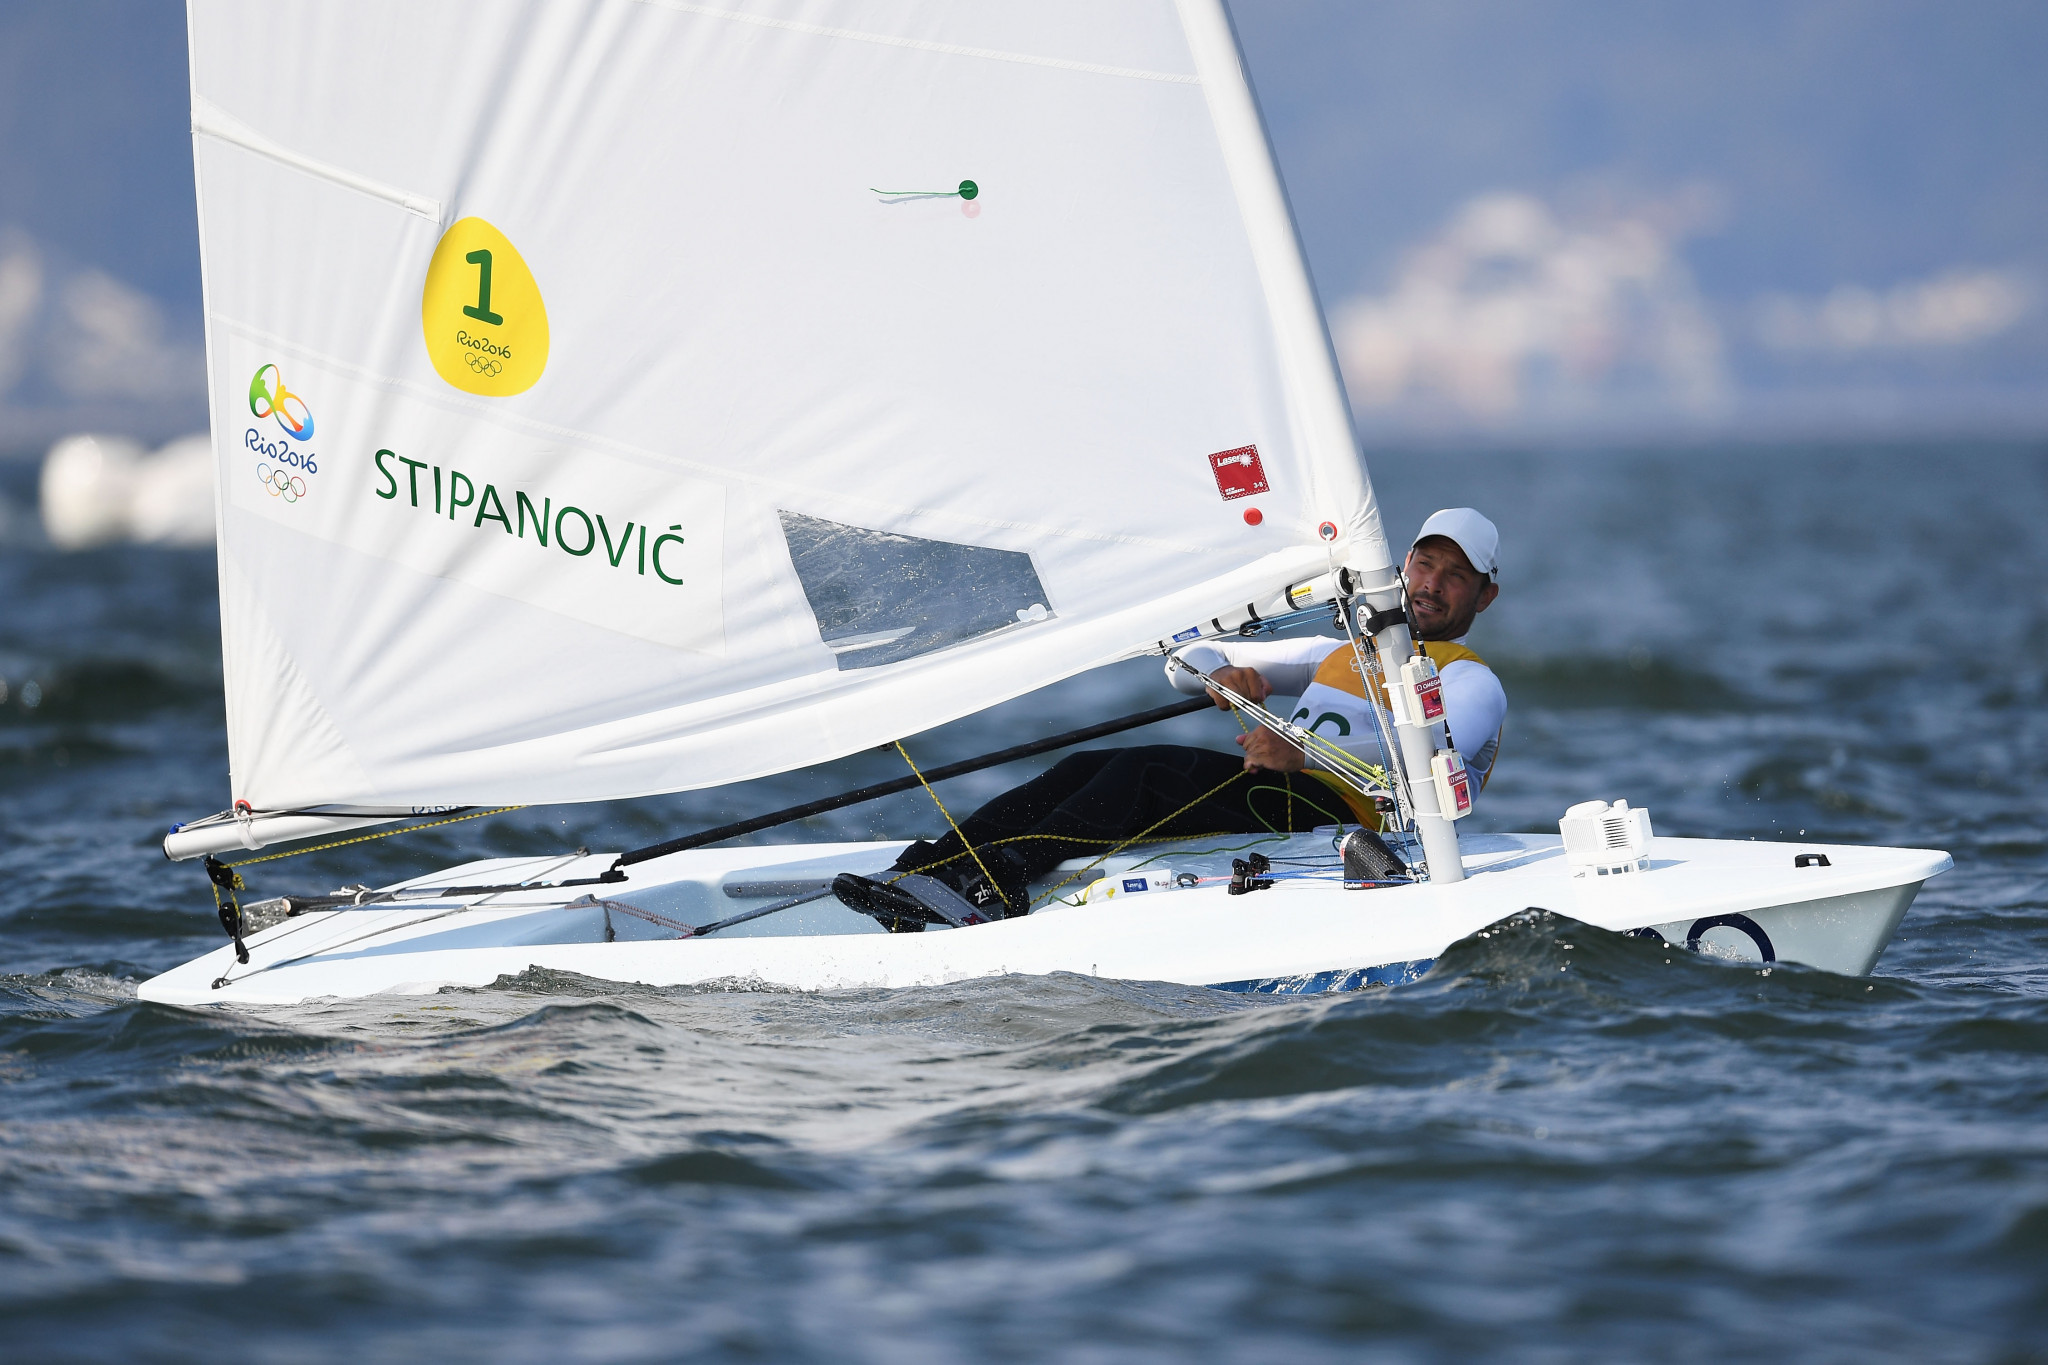 Alexander and Stipanovic share lead after day one of Laser Standard World Championships